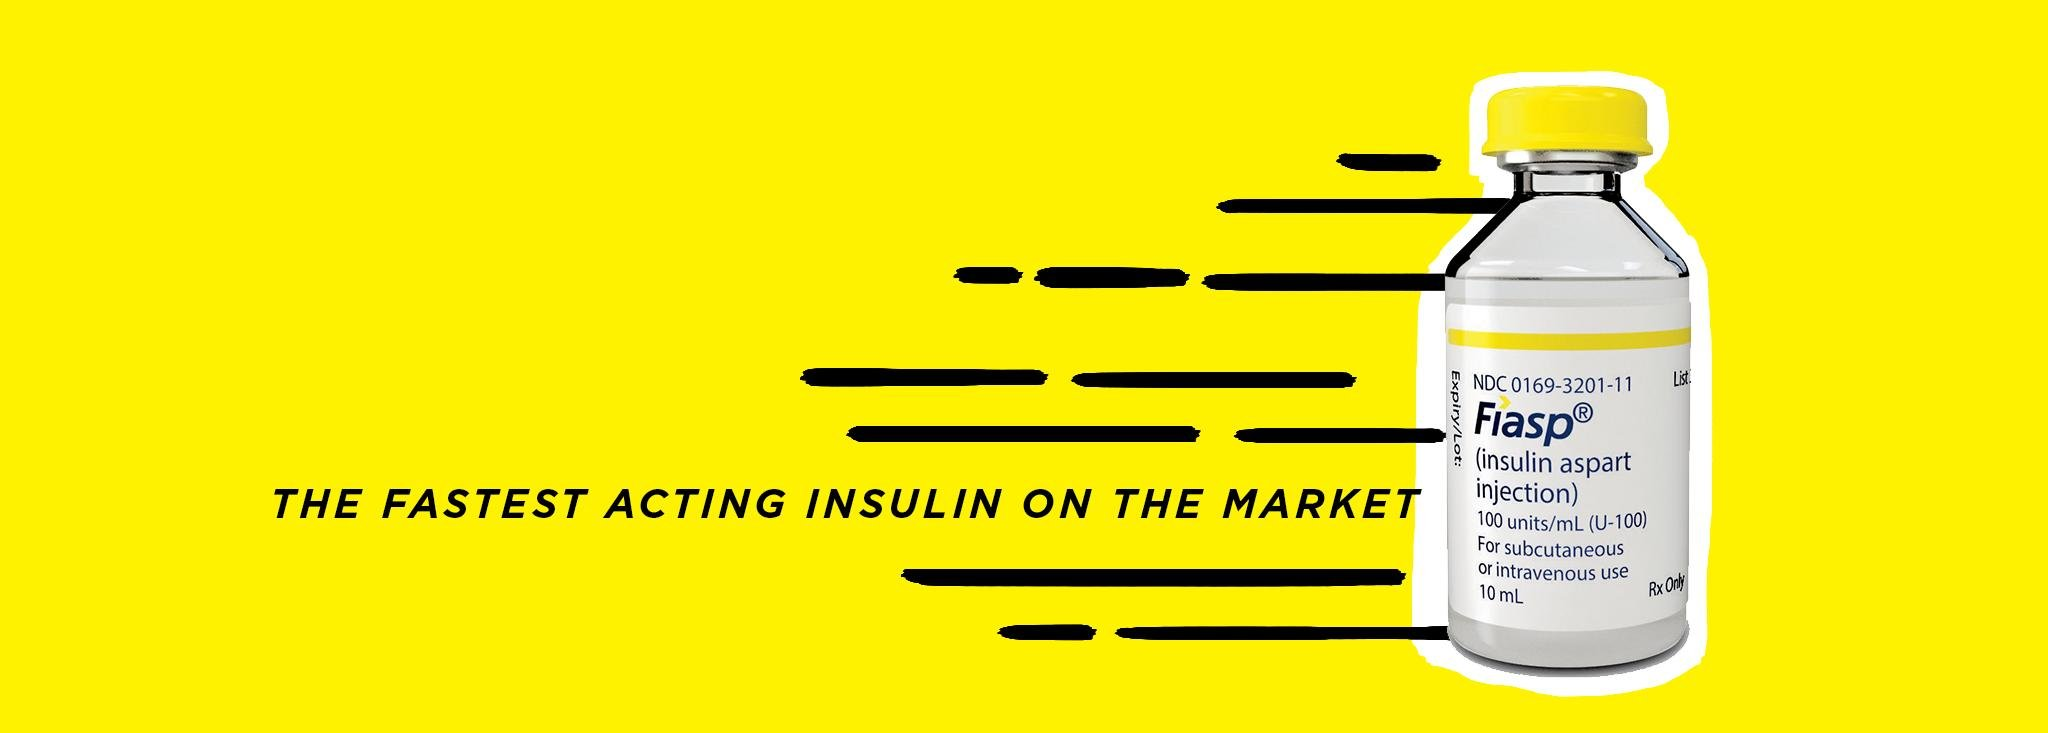 Fast-acting Insulin, Fiasp, Gets Fda Approval